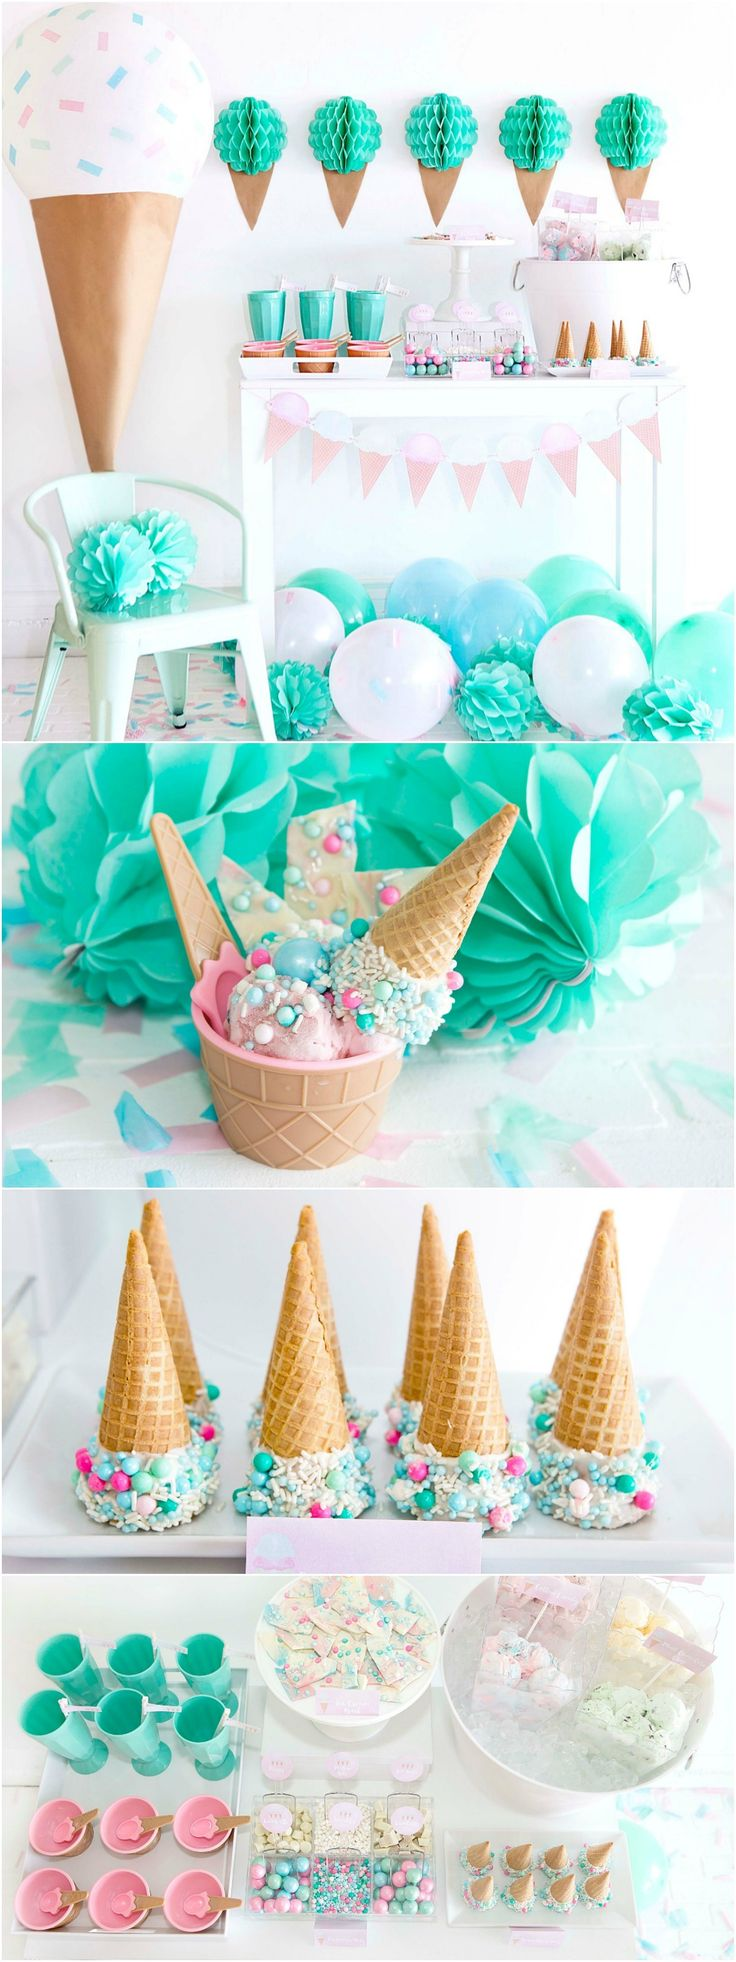 Ice Cream Party Ideas - Ice Cream Bar - Mint, Pink, and Aqua Girls Birthday Party - Ice cream Recipes and printables